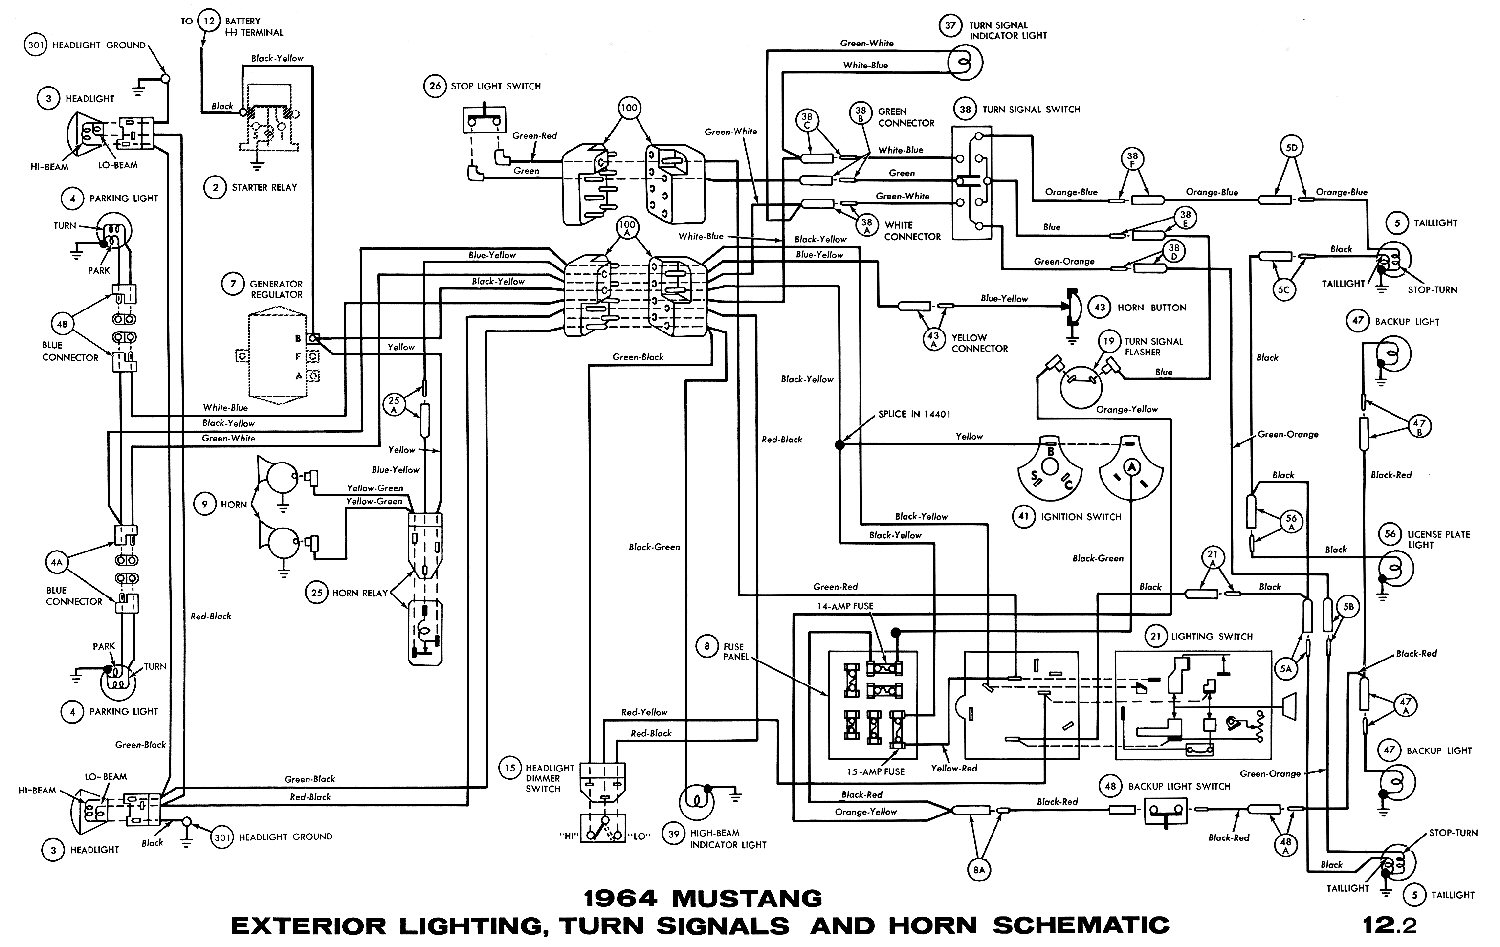 1964i 1964 mustang wiring diagrams average joe restoration 93 mustang turn signal wiring diagram at creativeand.co